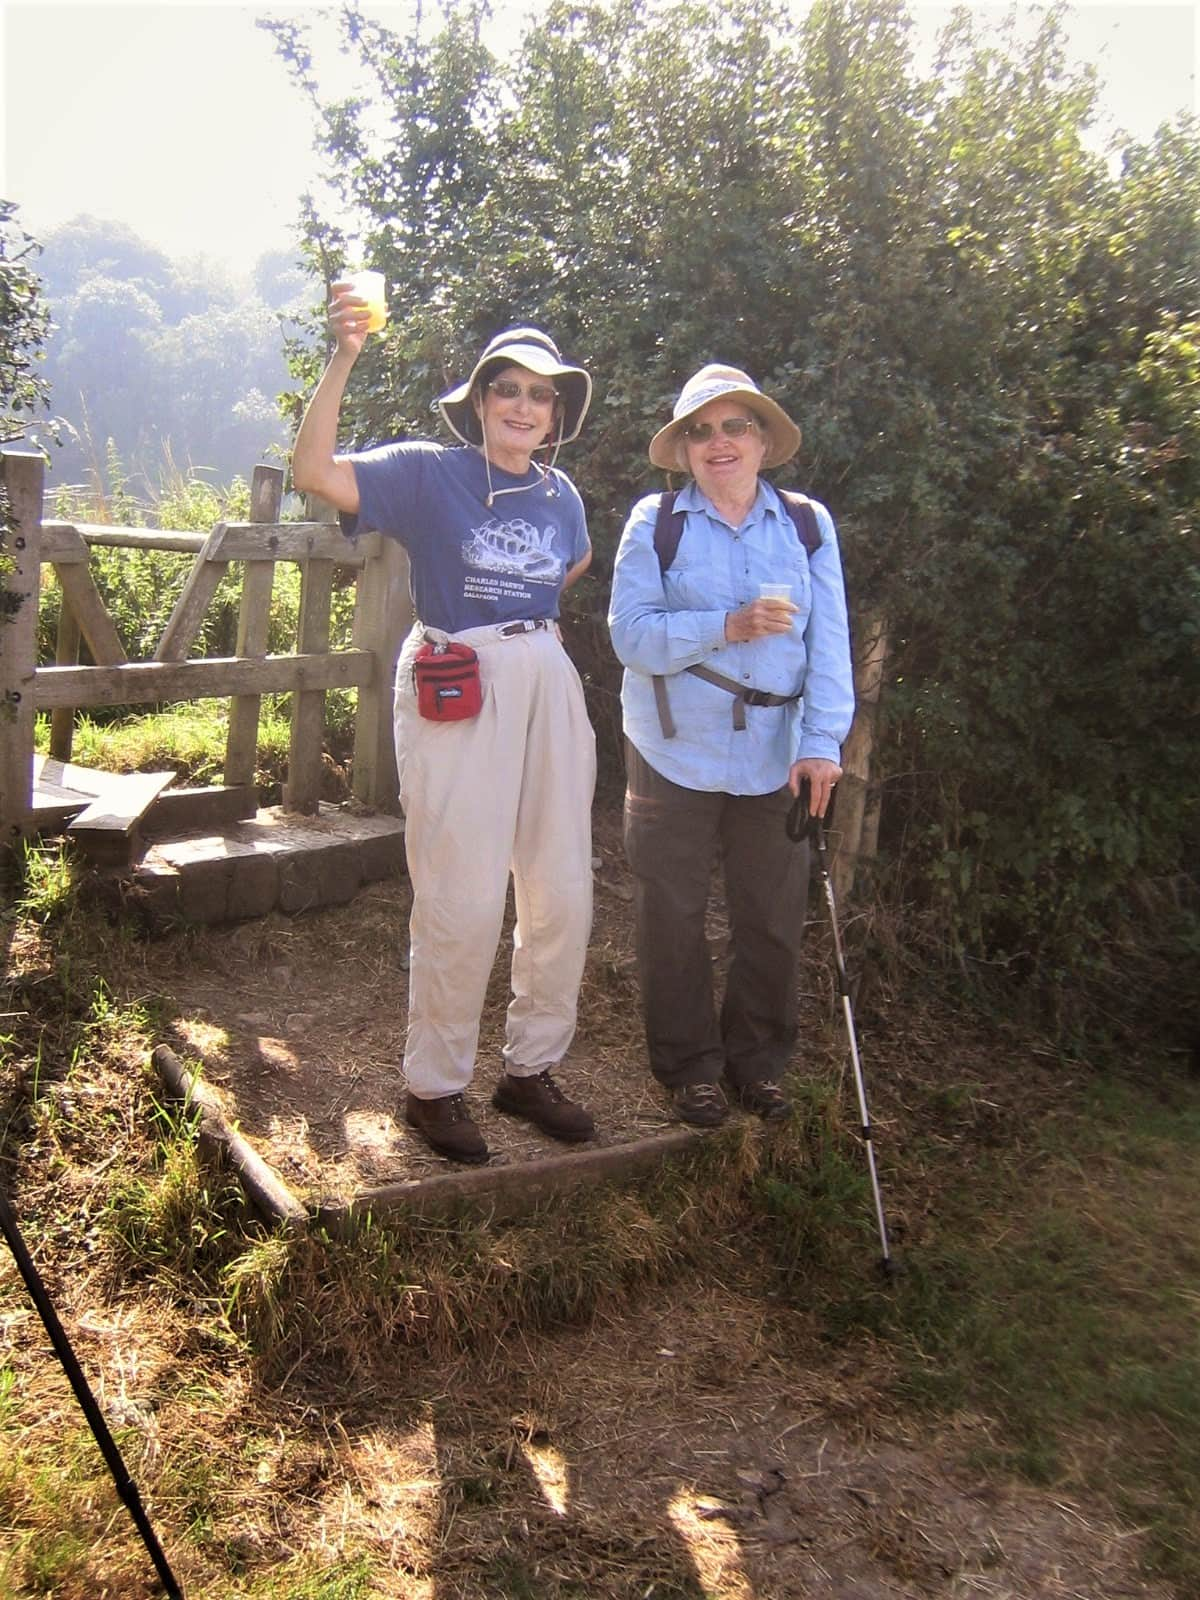 Finishing the Cotswolds Way